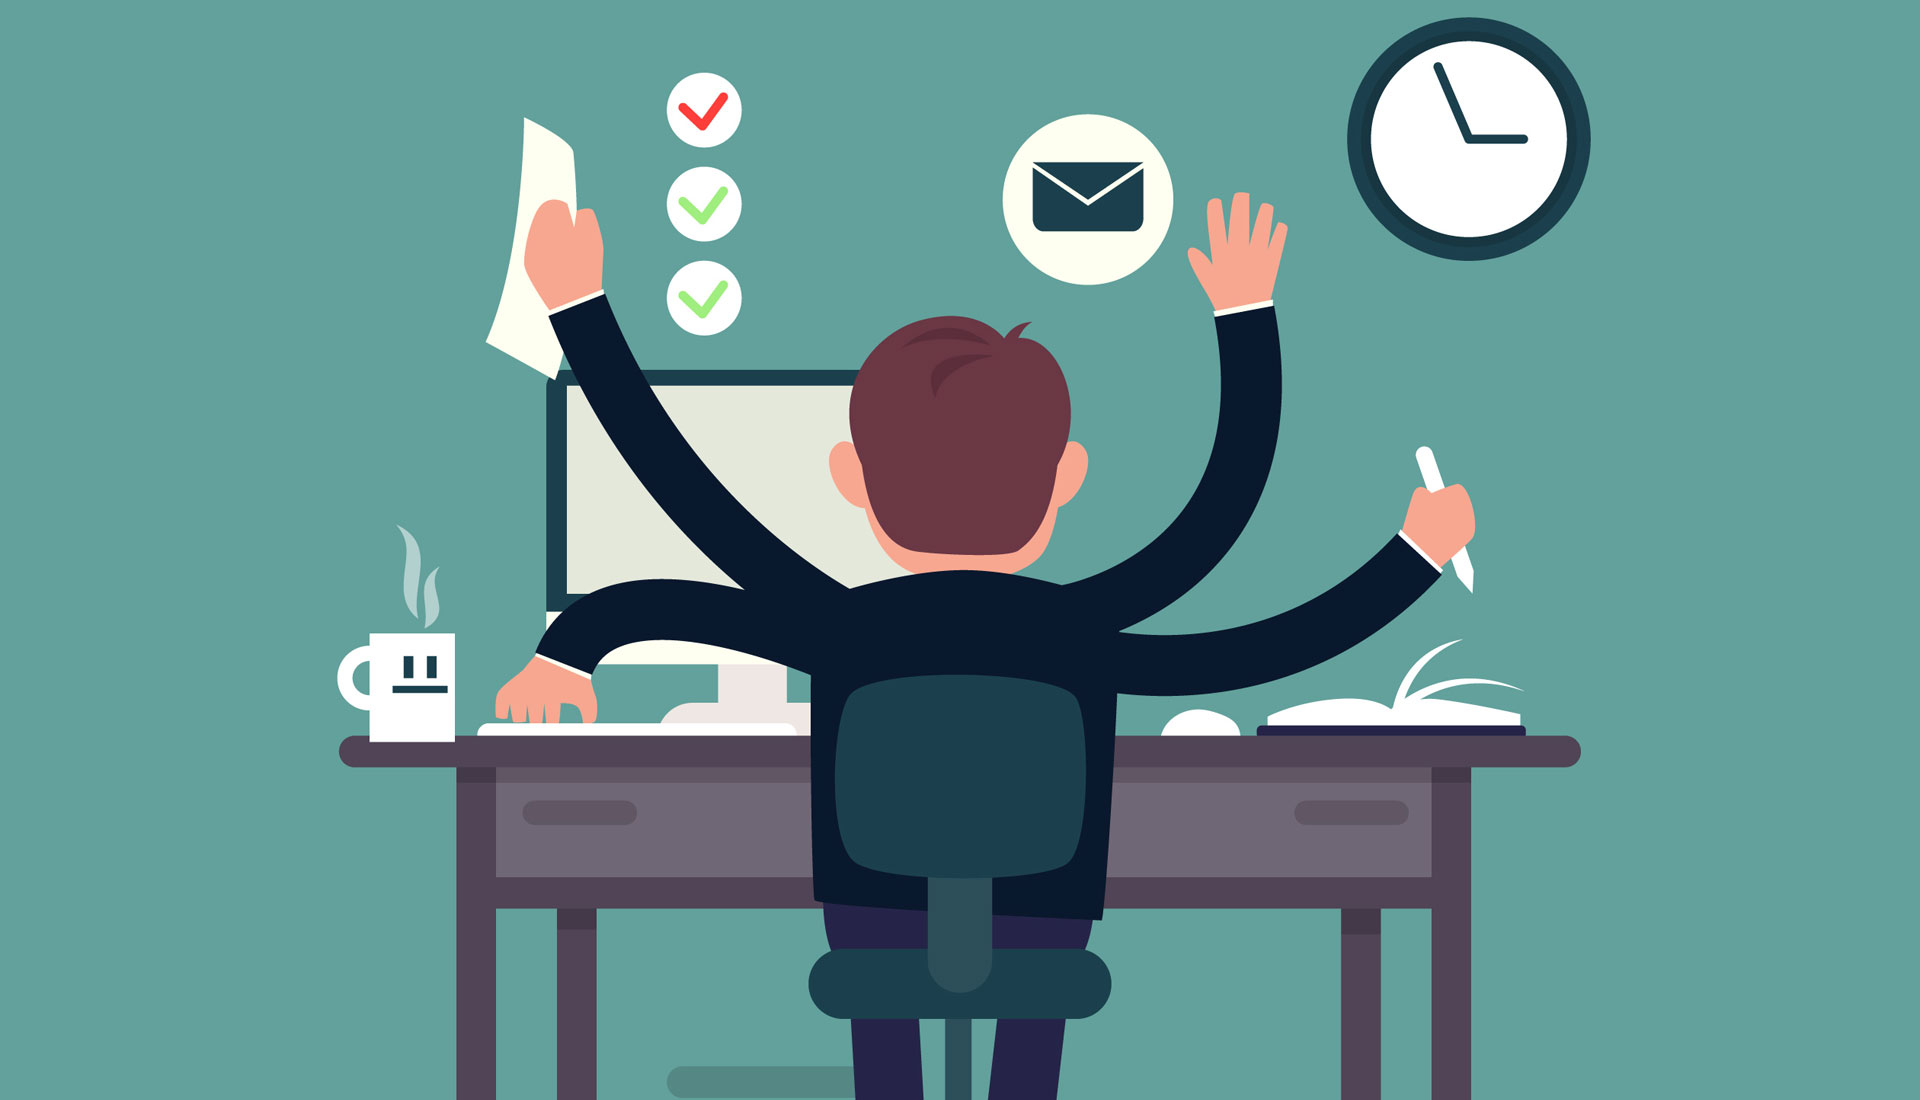 5-best-productivity-tools-to-help-you-work-efficiently